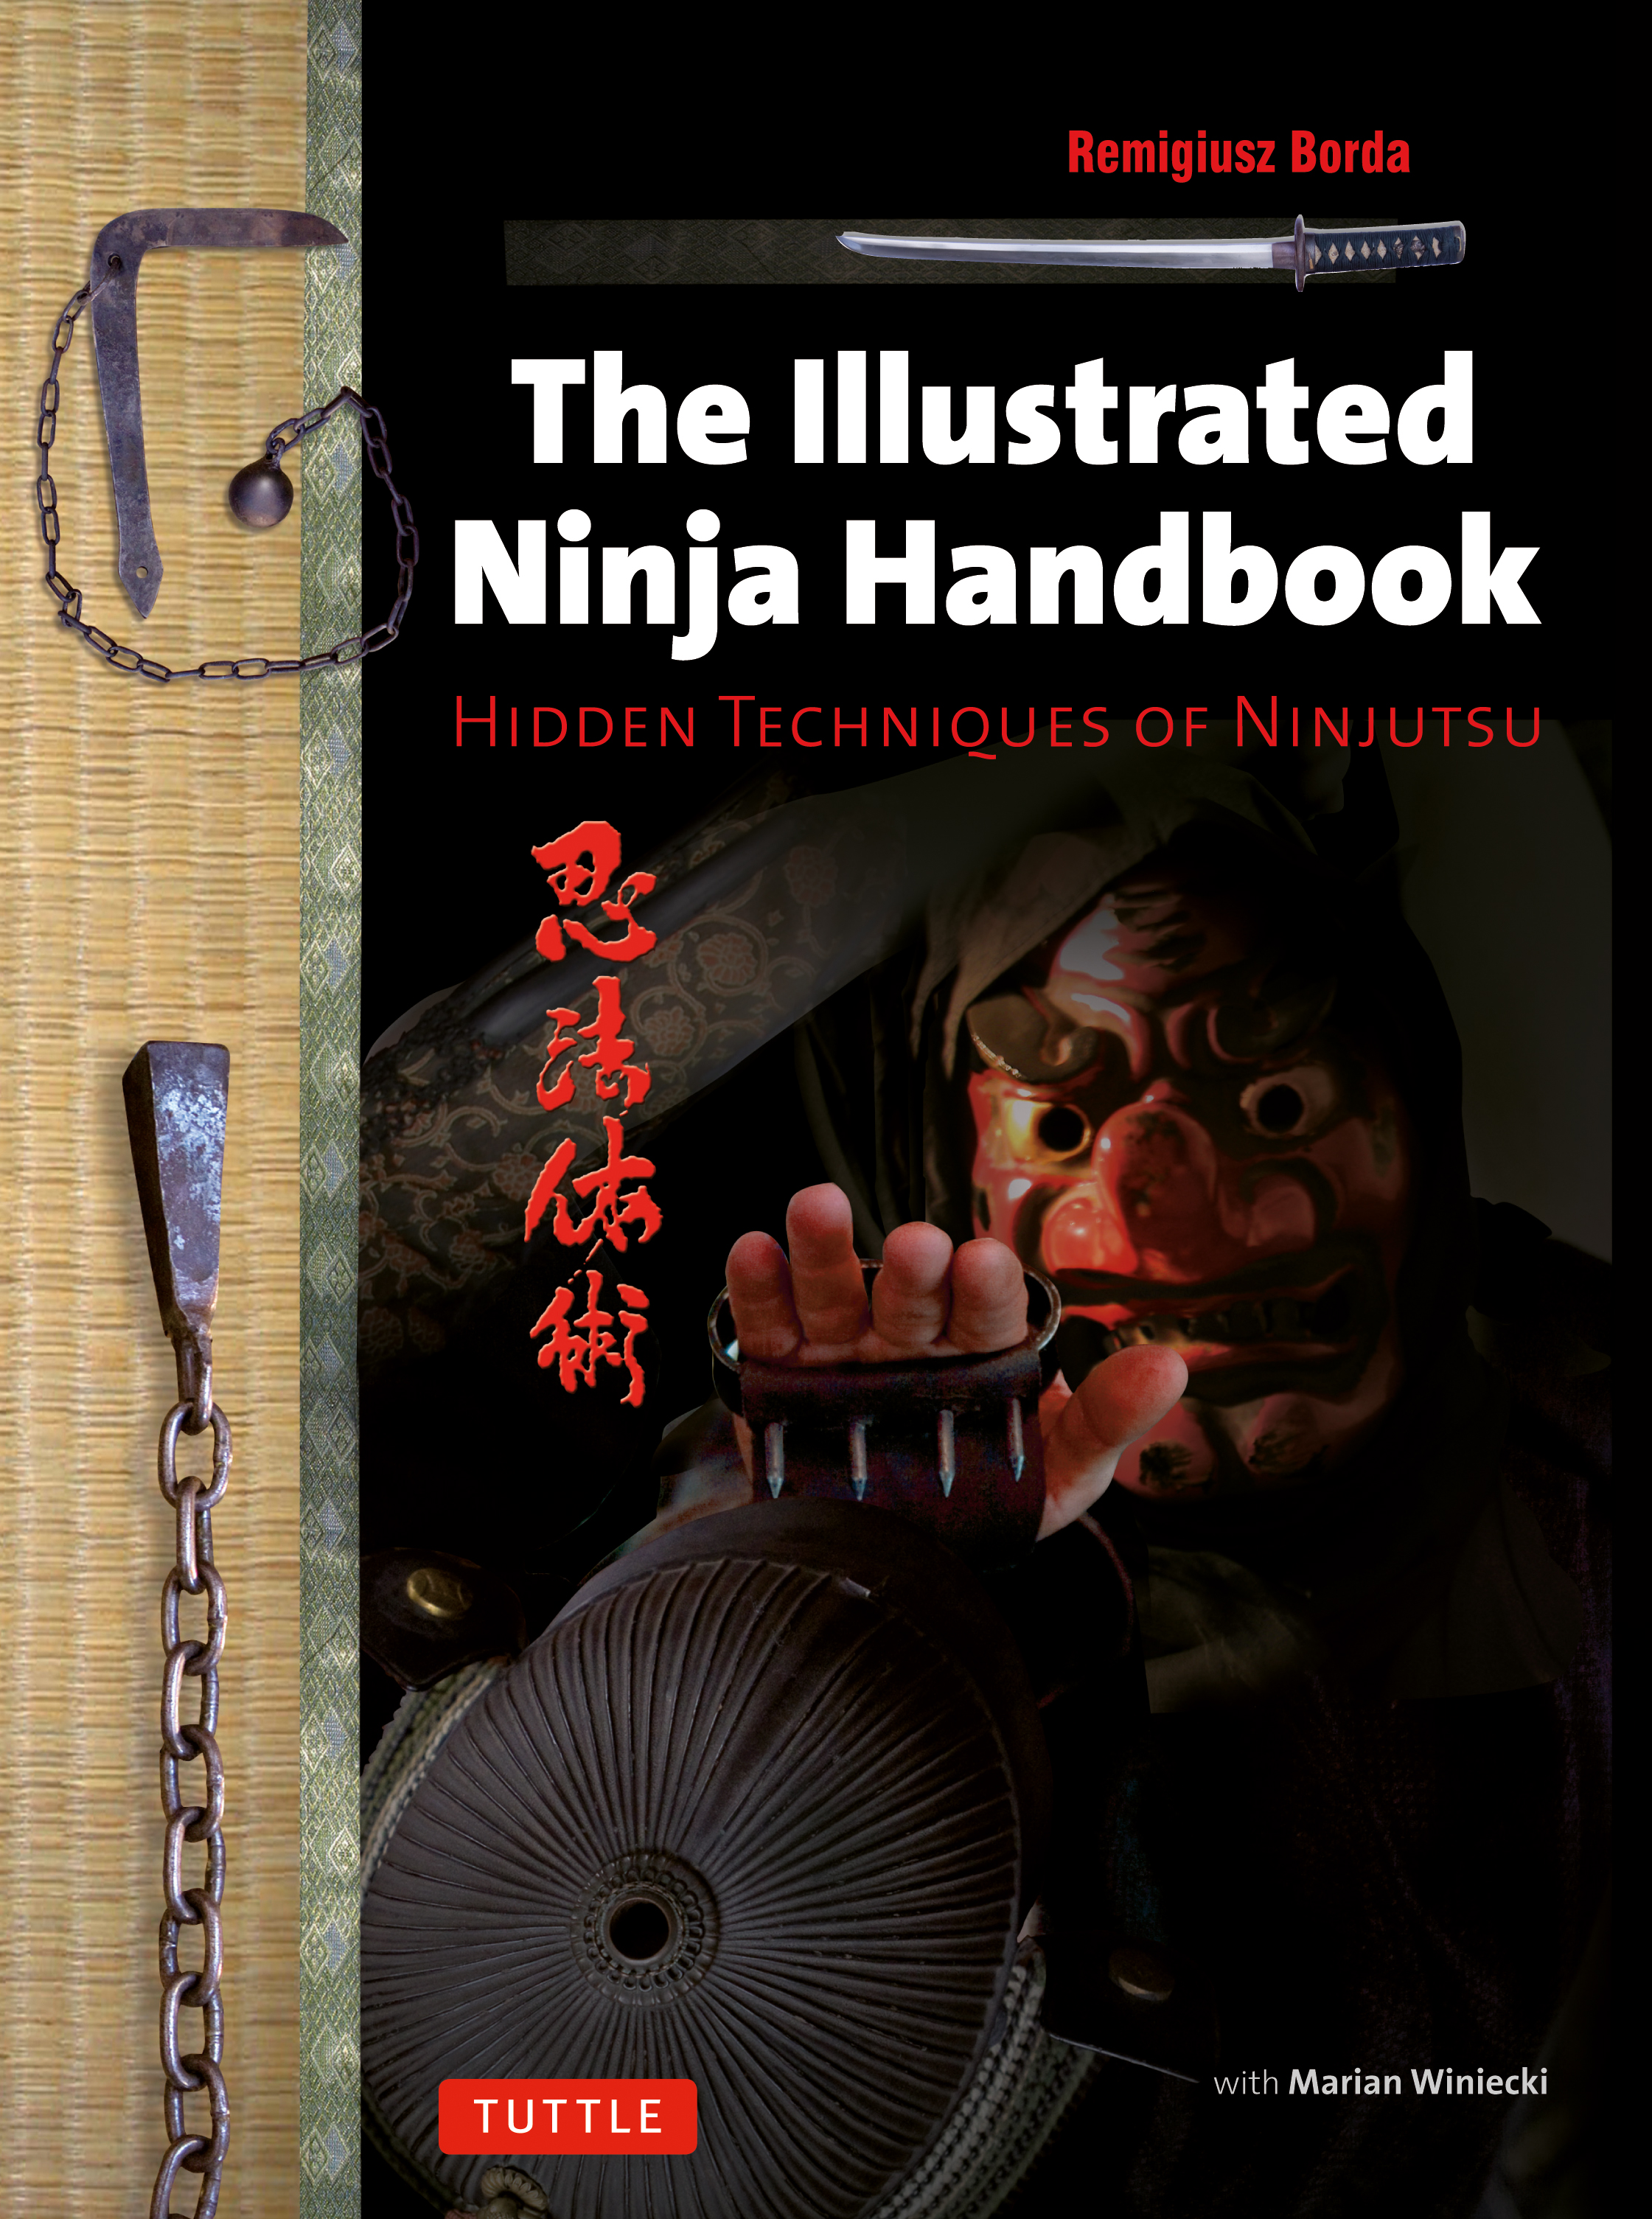 Illustrated ninja handbook 9784805313053 hr